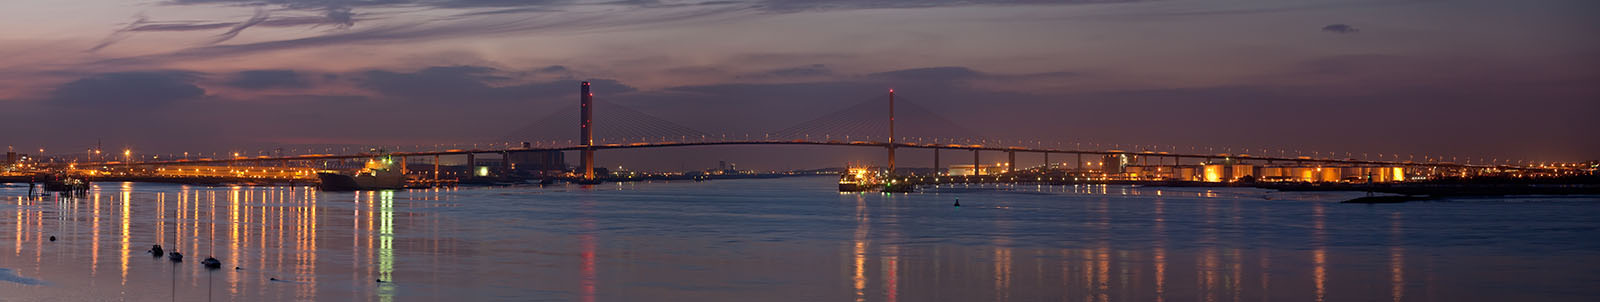 A panoramic view of the Queen Elizabeth II Bridge in Dartford, England, as viewed from Greenhithe in Kent.